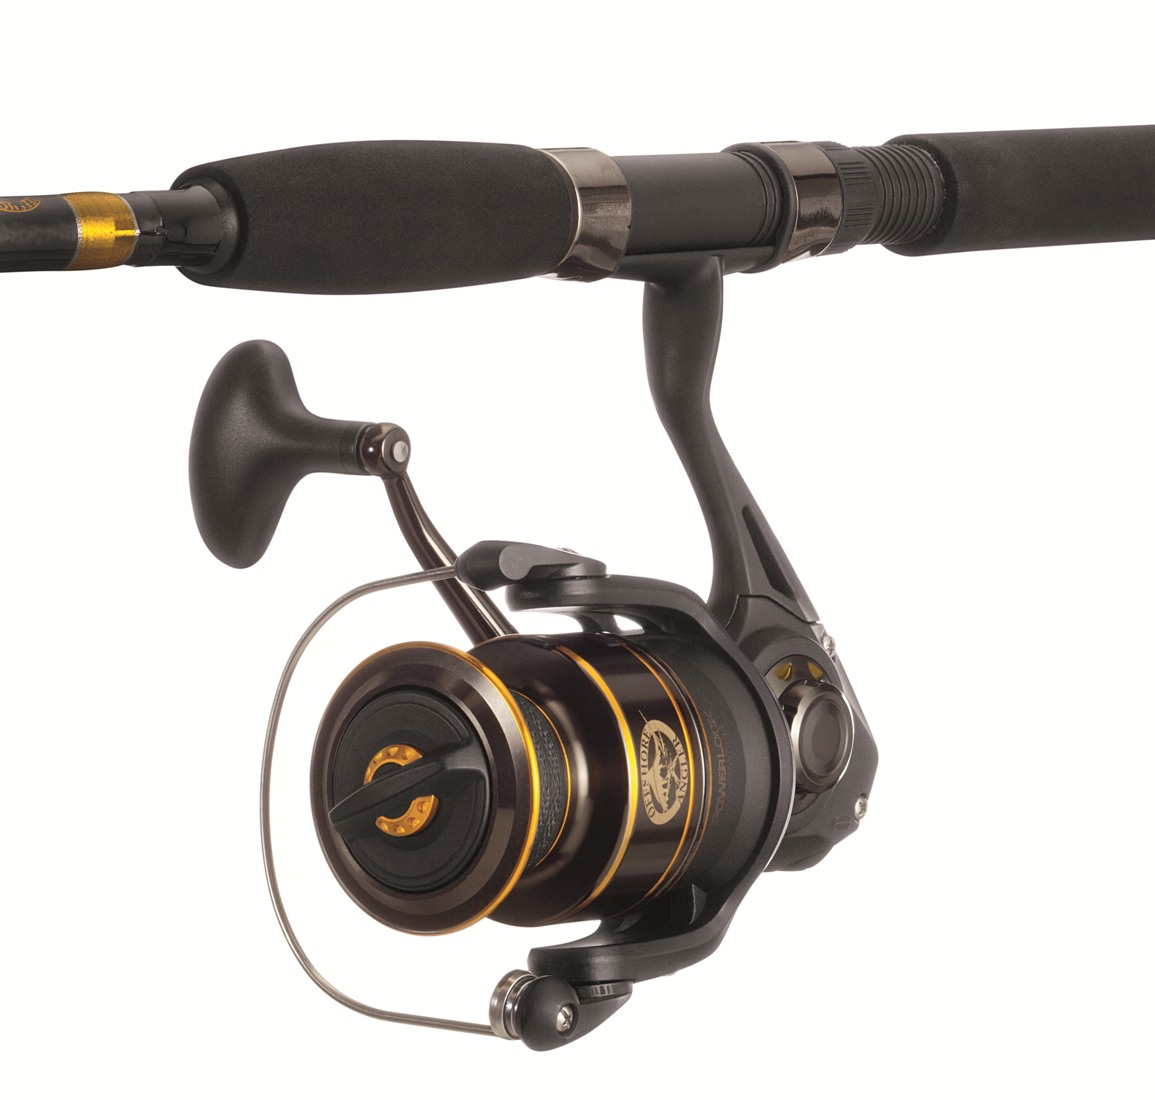 Bass pro shops news releases offshore angler frigate for Tuna fishing rod and reel combos